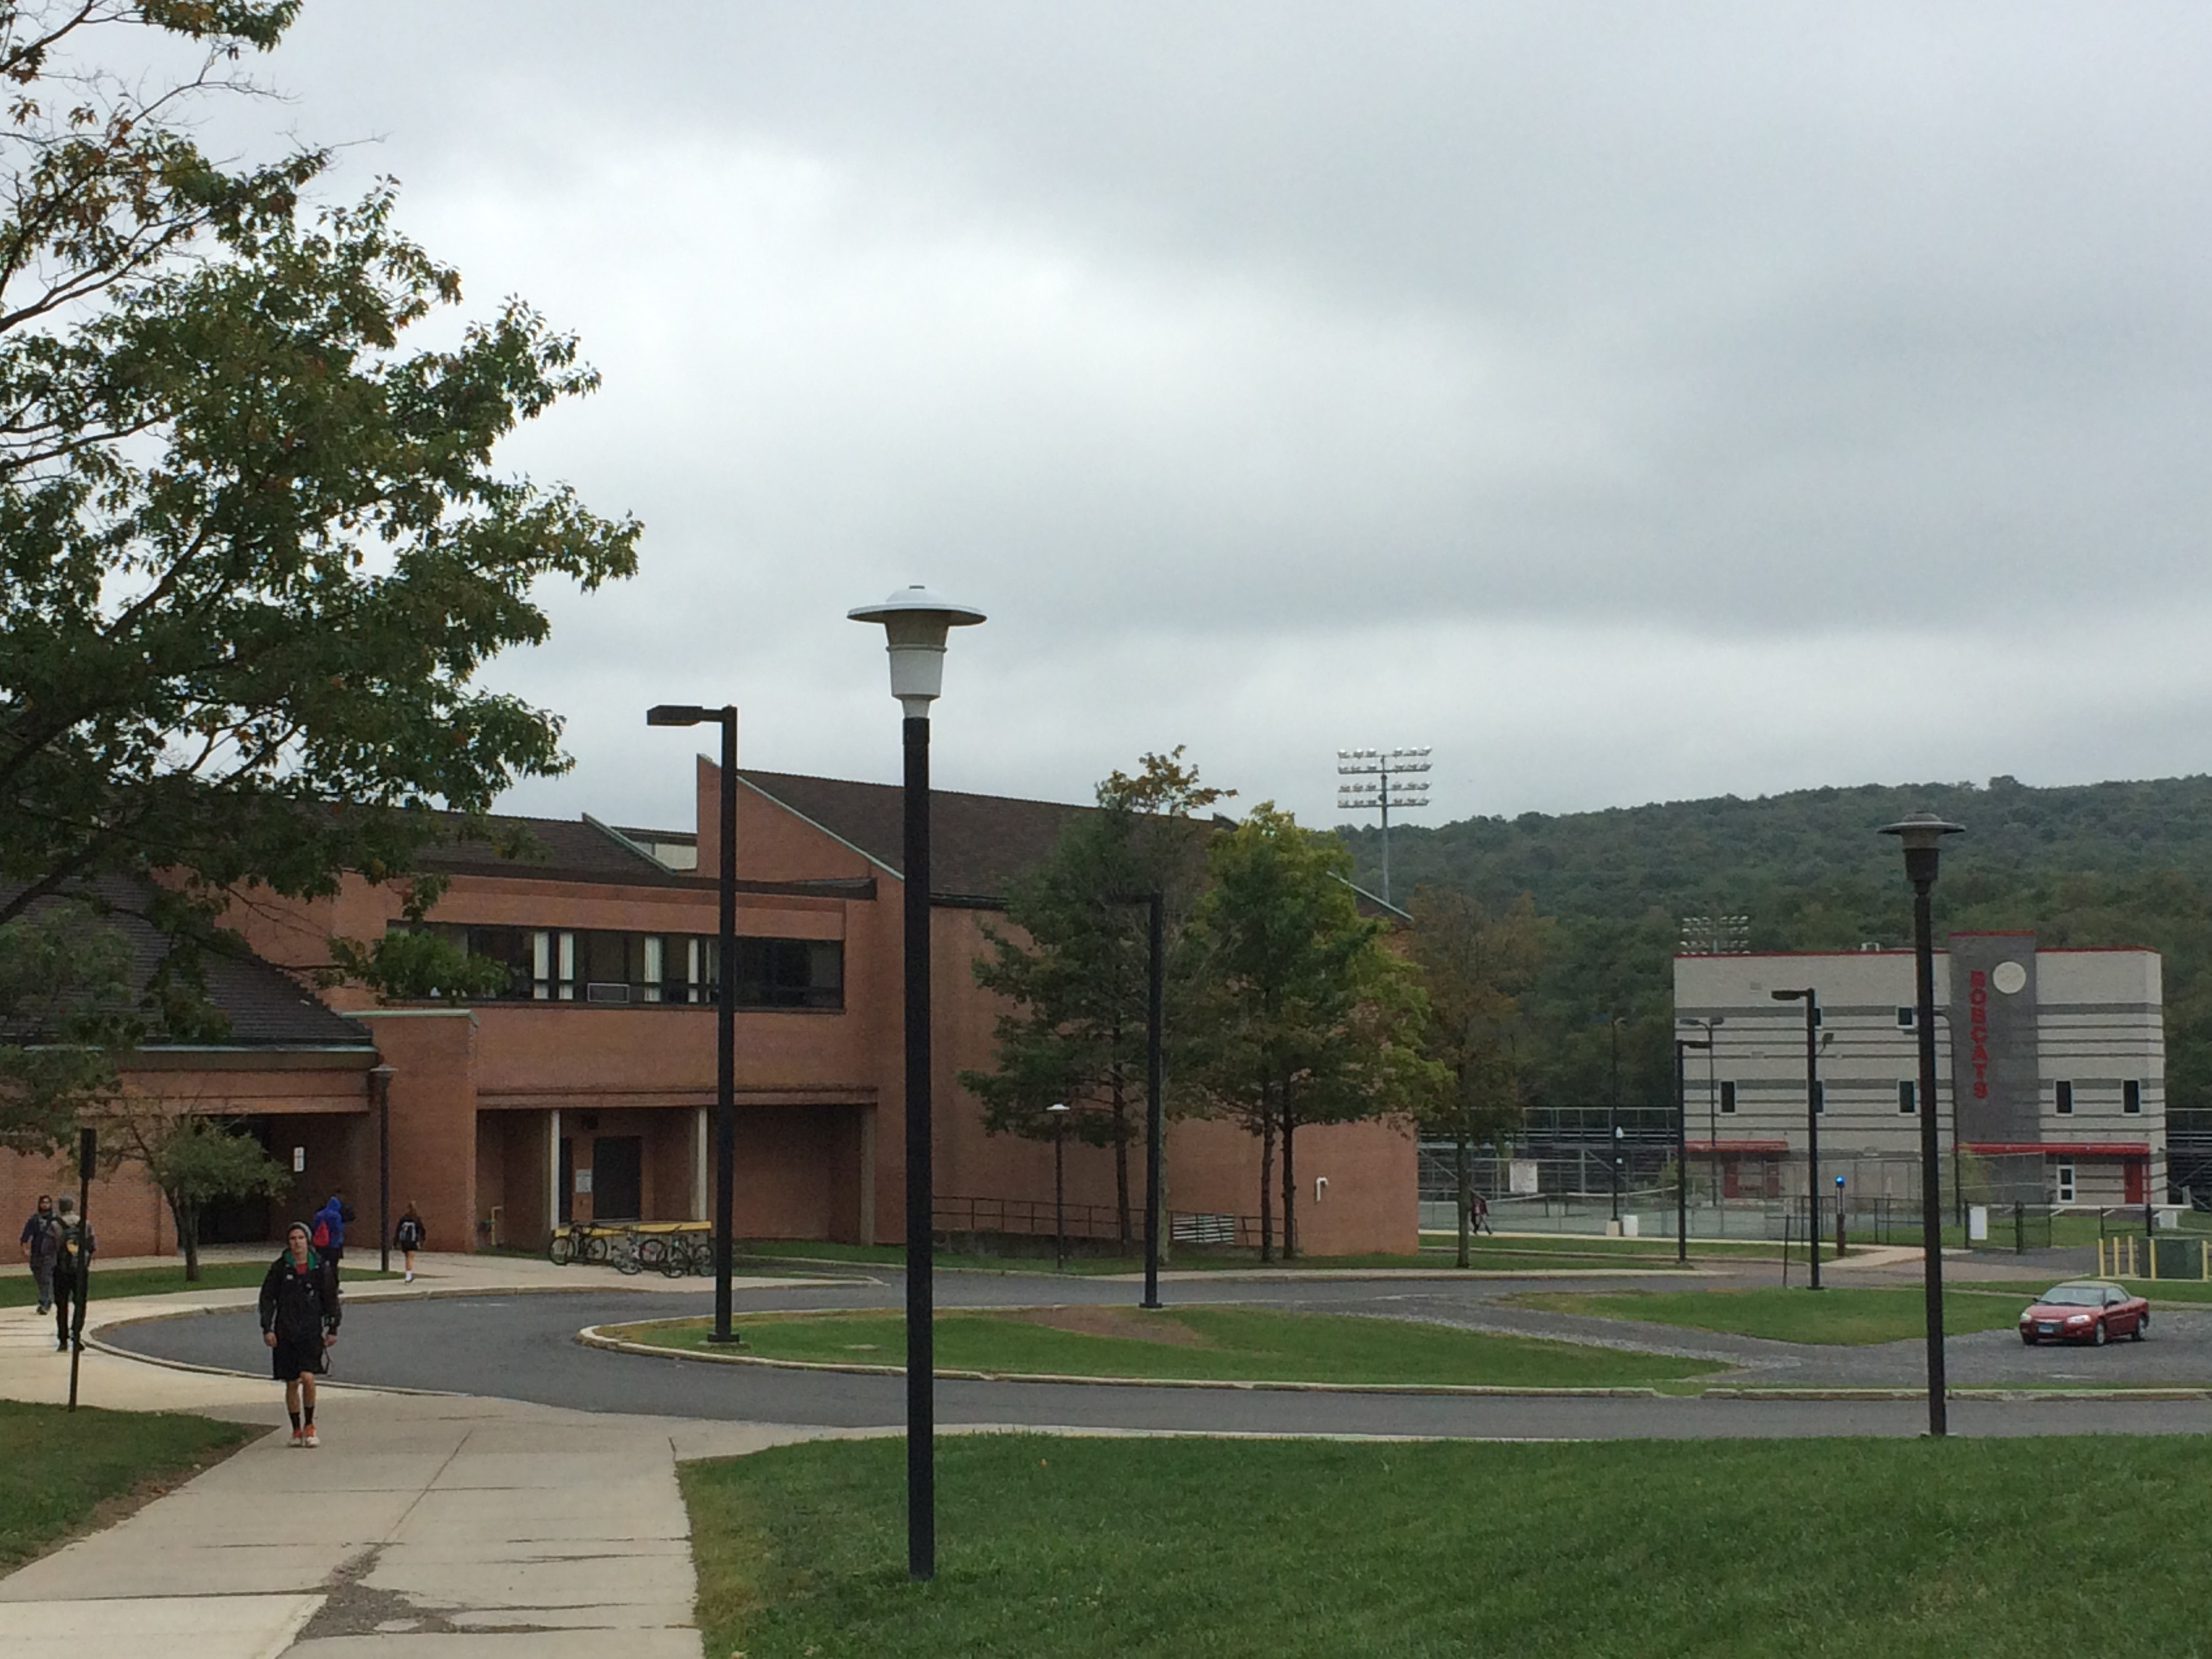 The Cordts P.E. Center's fire alarm is not working at present time. (Brad Kroner/TBL)